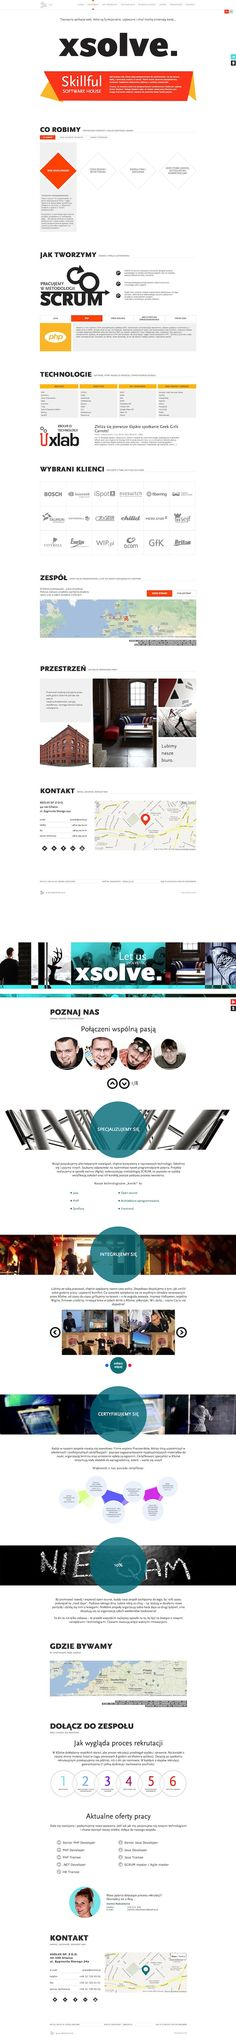 XSolve Software House www.xsolve.pl full website with team presentation.  Author: Chilid    Responsive Web Design